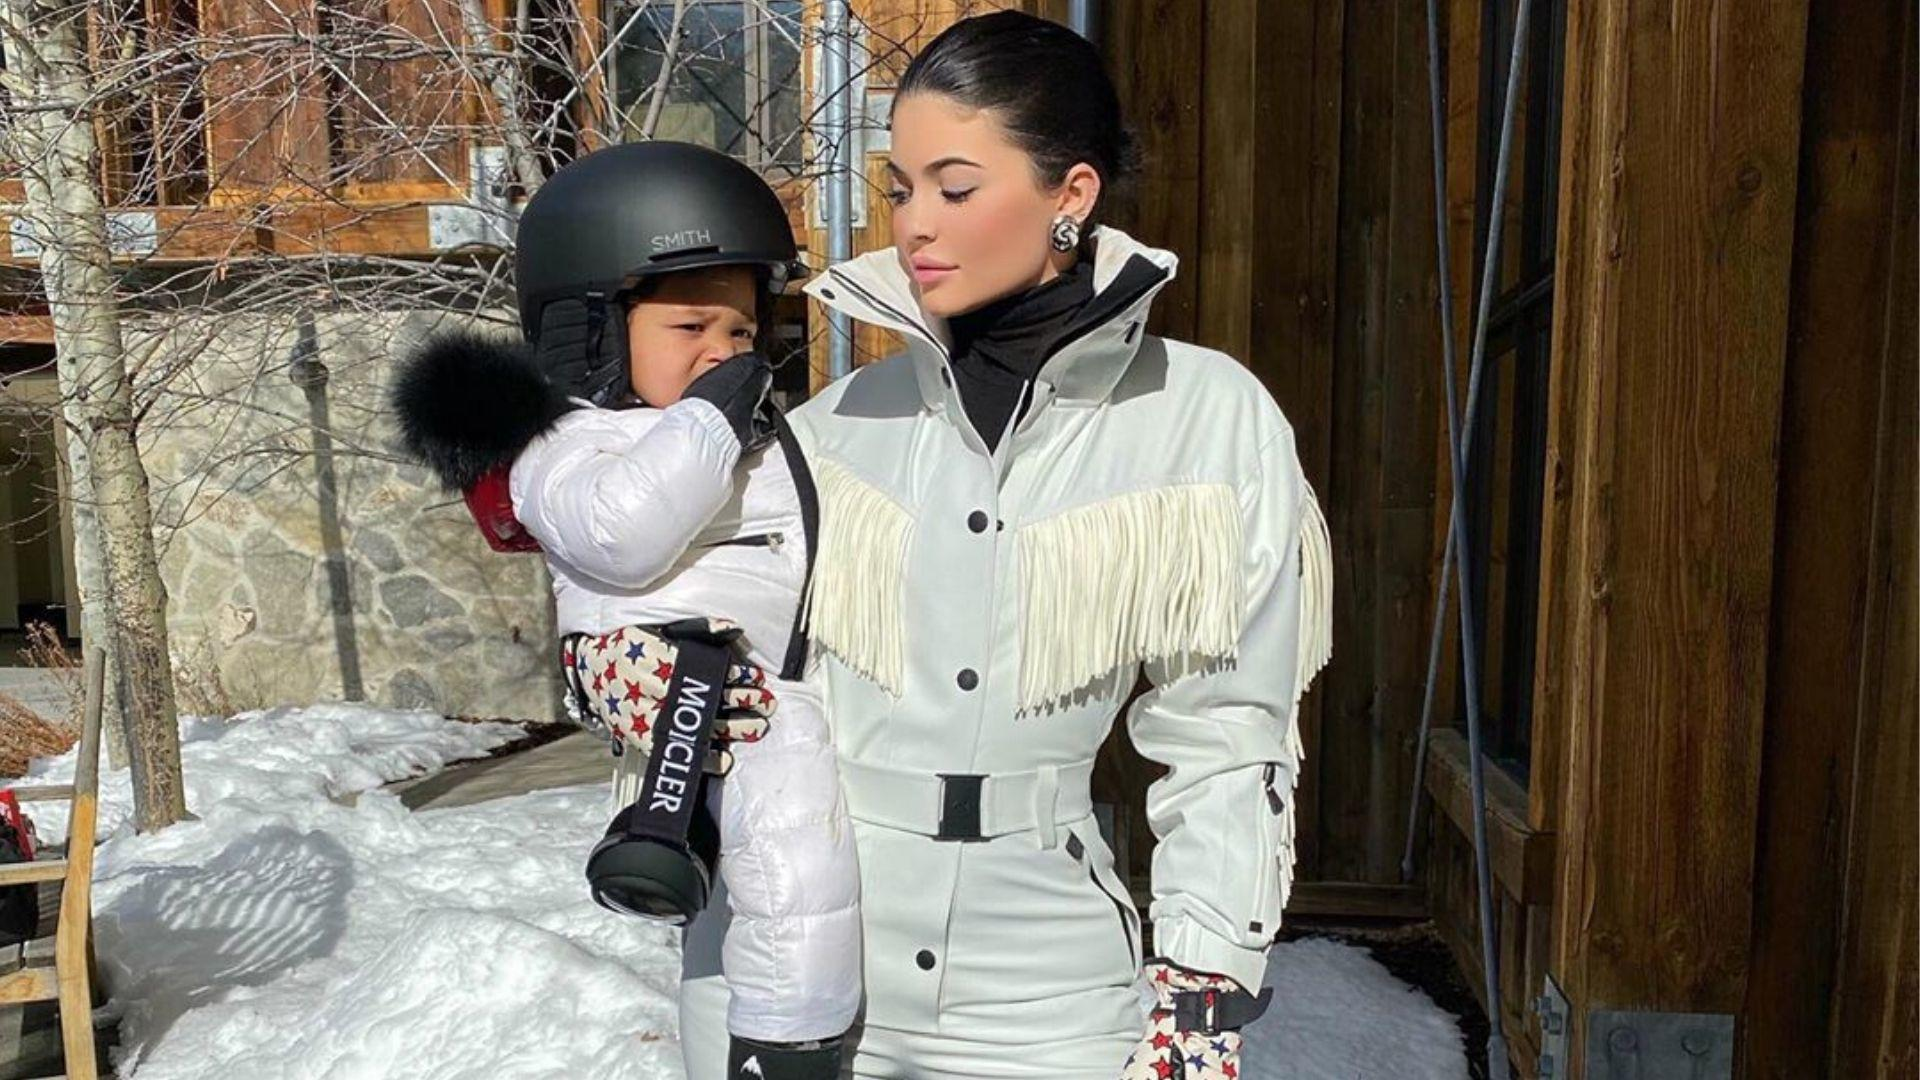 Meet One-Year-Old Snowboarder Extraordinaire: Stormi Webster